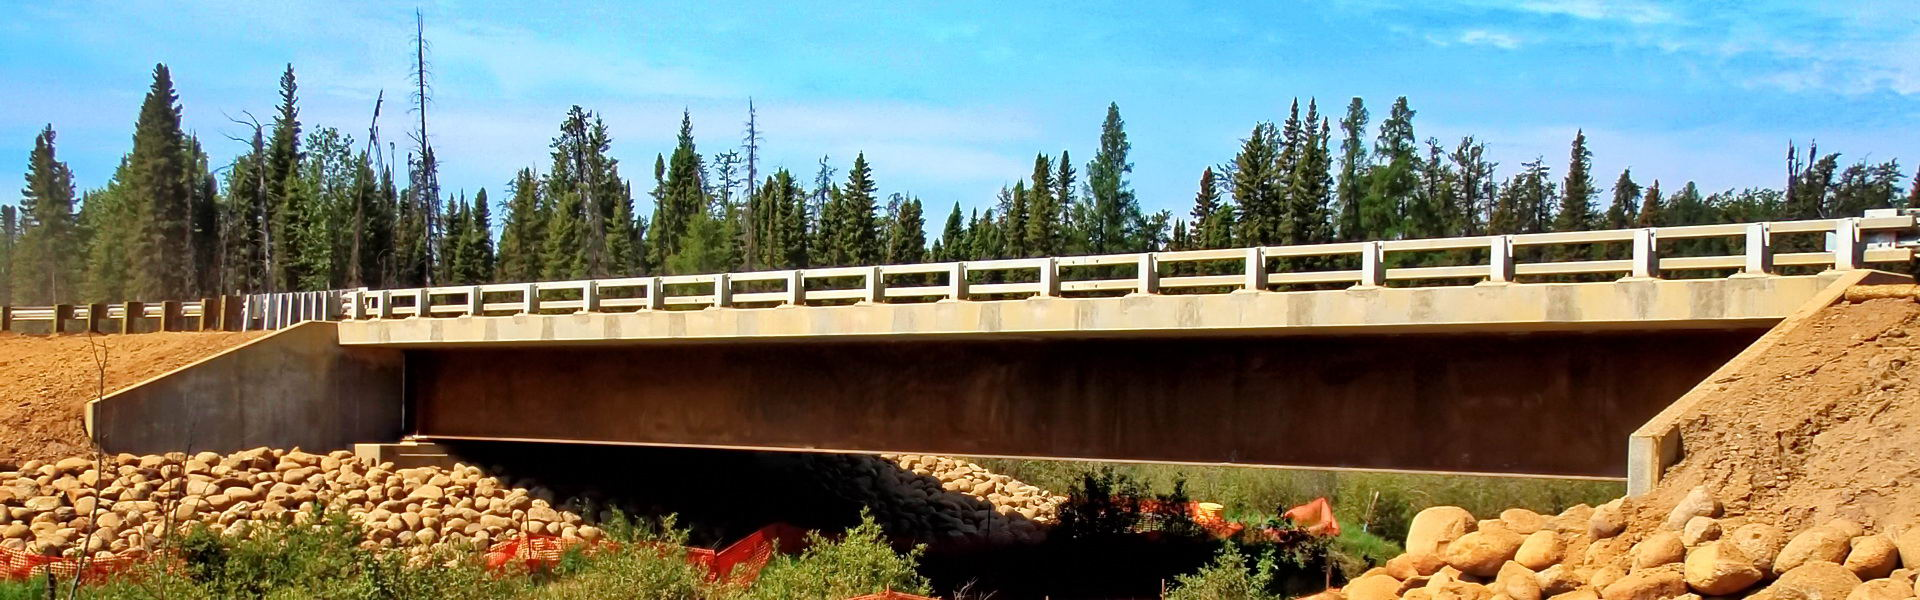 Muskeg River Bridge